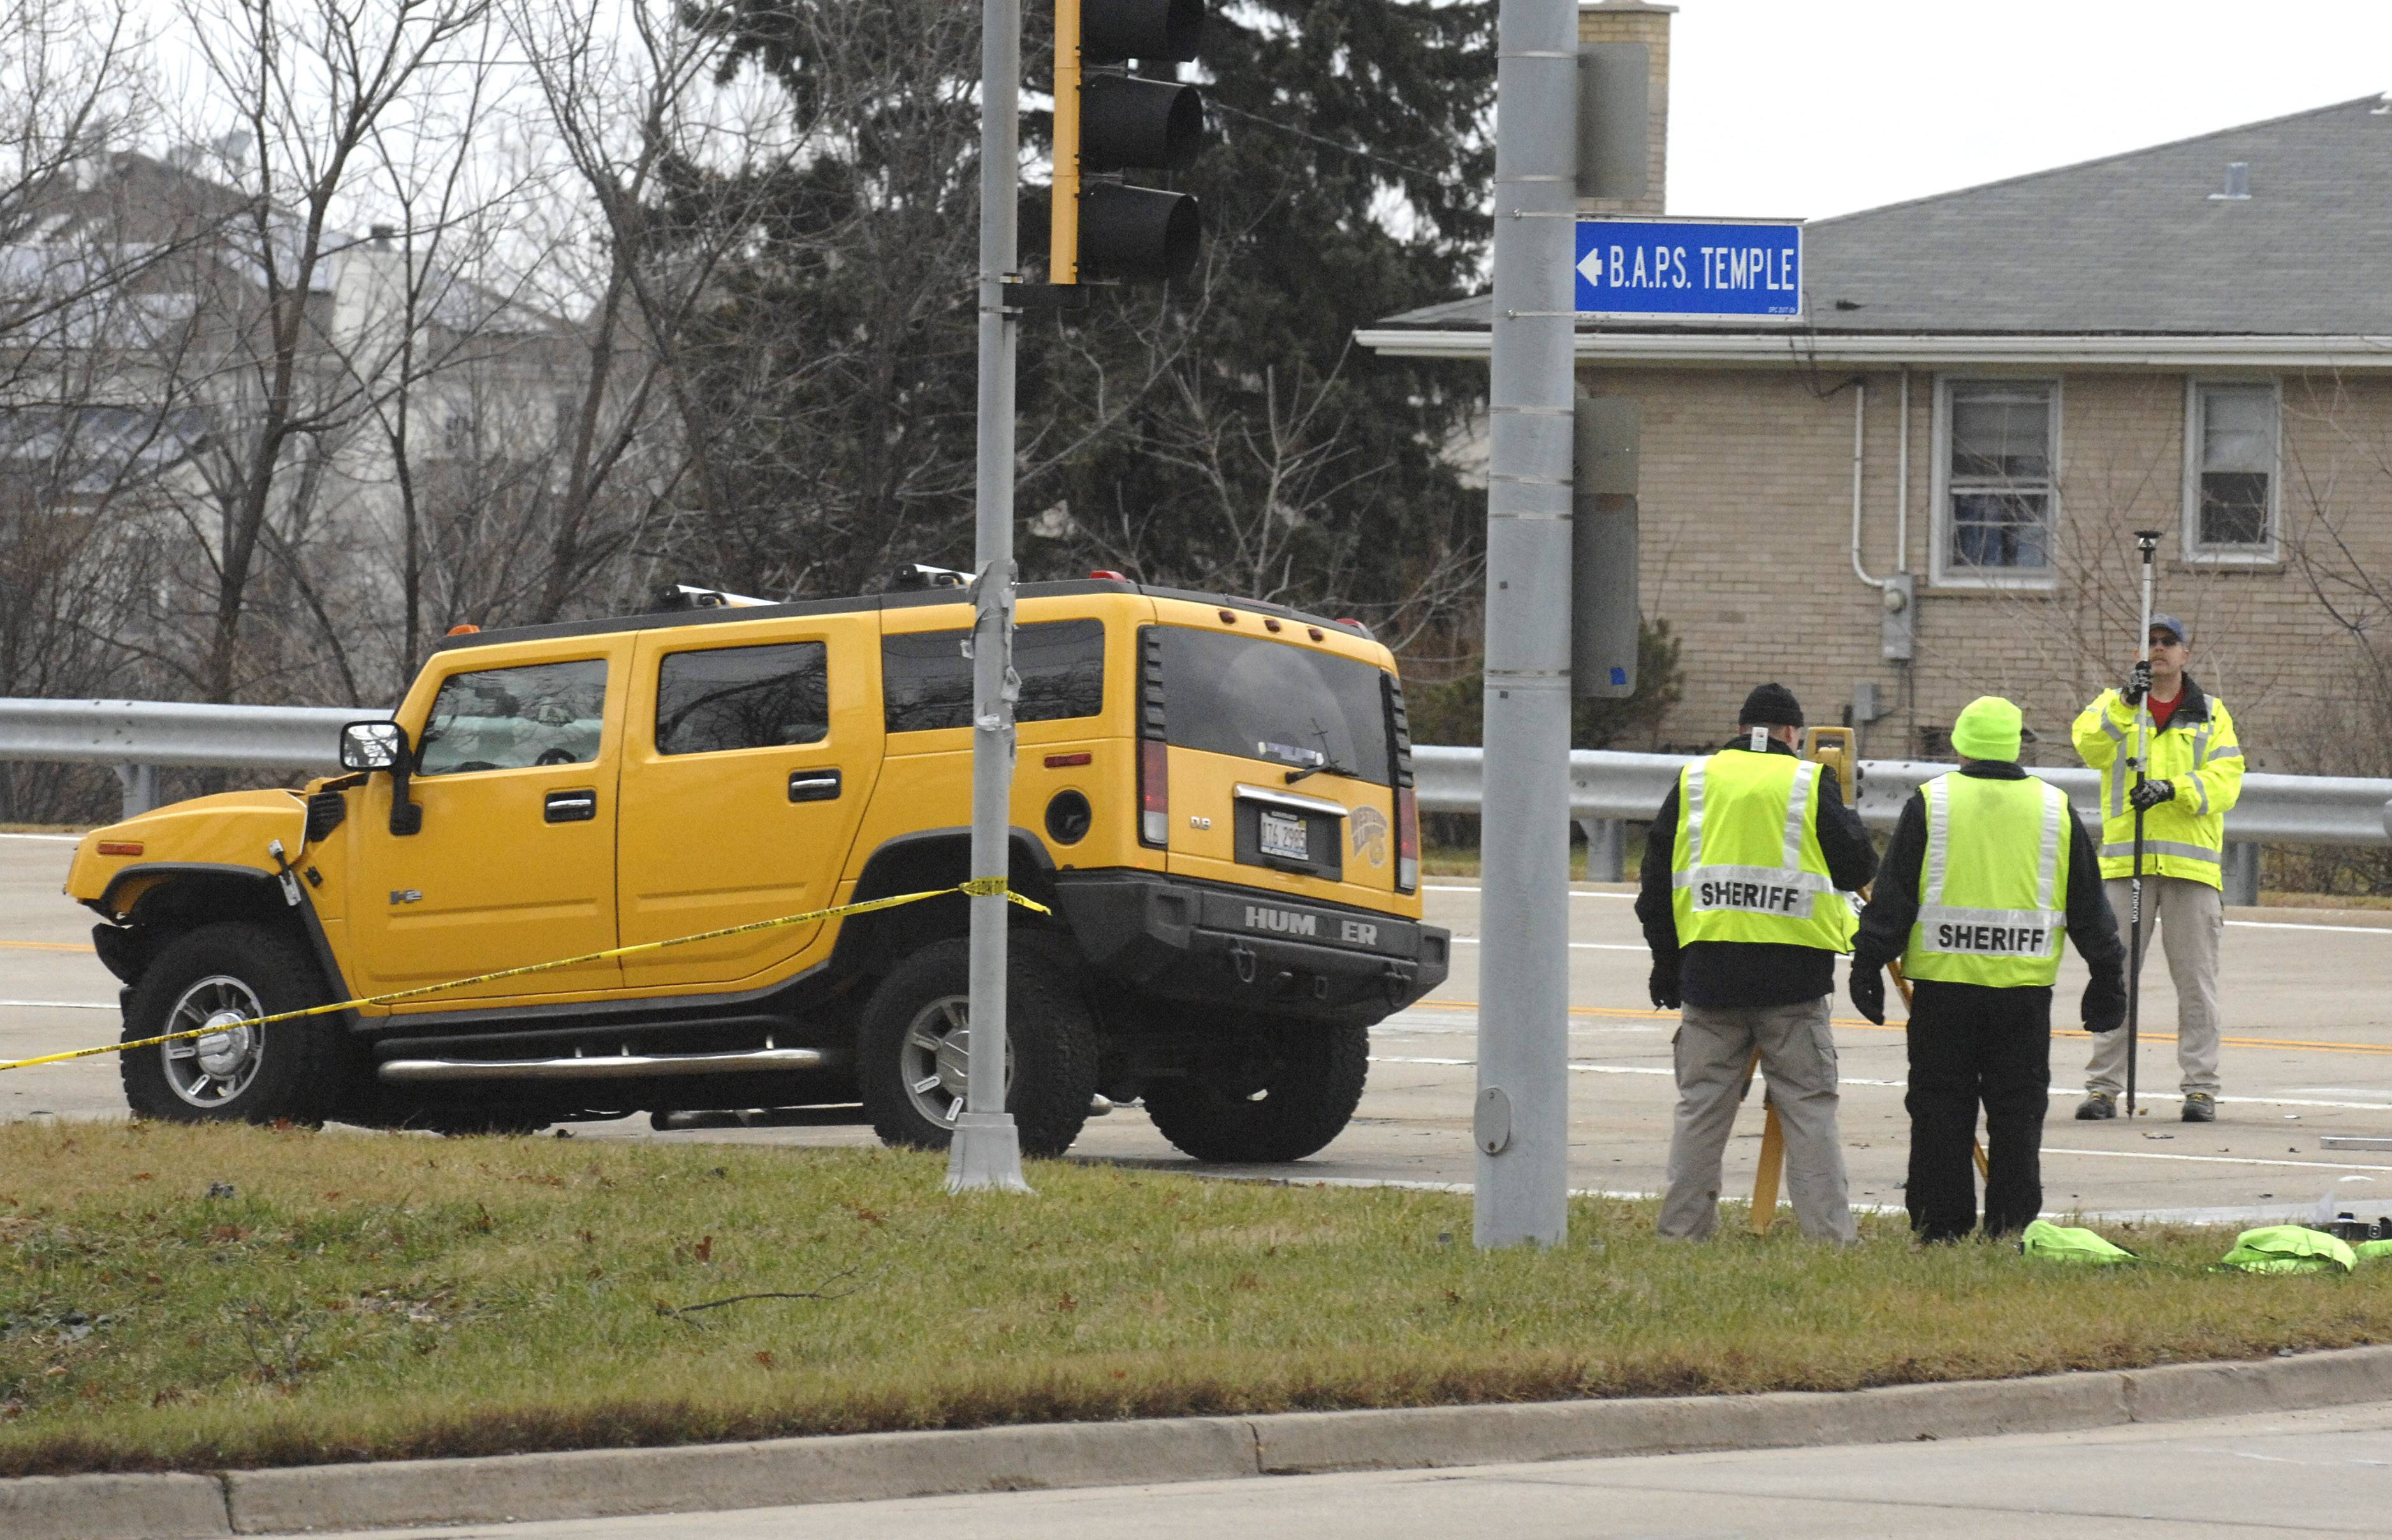 A 21-year-old Wayne man, Rick Judge, was found guilty Tuesday of charges related to a fatal accident in December 2011 near Bartlett that claimed the life of a Hanover Park man. Judge was driving this yellow Hummer when the crash occurred.